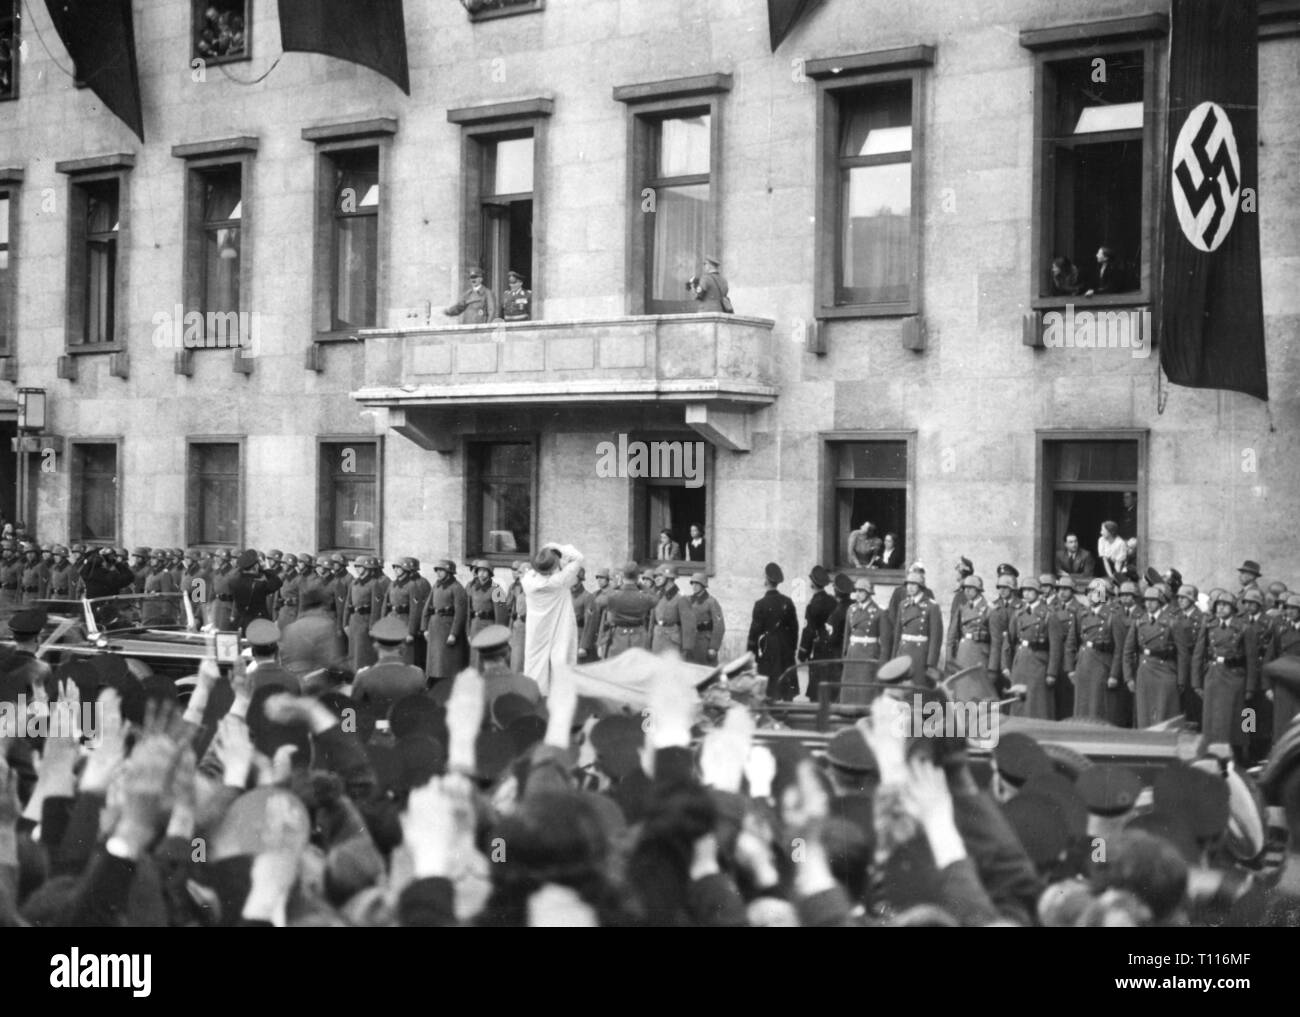 Nazism / National Socialism, politics, Annexation of Austria, 1938, Reich Chancellor Adolf Hitler on the balcony of the Chancellery after his return from Vienna, Berlin, March 1938, Anschluss, Herrmann Göring, crowd, crowds, crowds of people, Wilhelmstrasse, Greater German Realm, Greater Germany, Grossdeutsches Reich, Germany, German Reich, Third Reich, 20th century, 1930s, politics, policy, connection, connexion, connections, connexions, Chancellor of the Reich, Reichskanzler, balcony, balconies, historic, historical, Additional-Rights-Clearance-Info-Not-Available - Stock Image